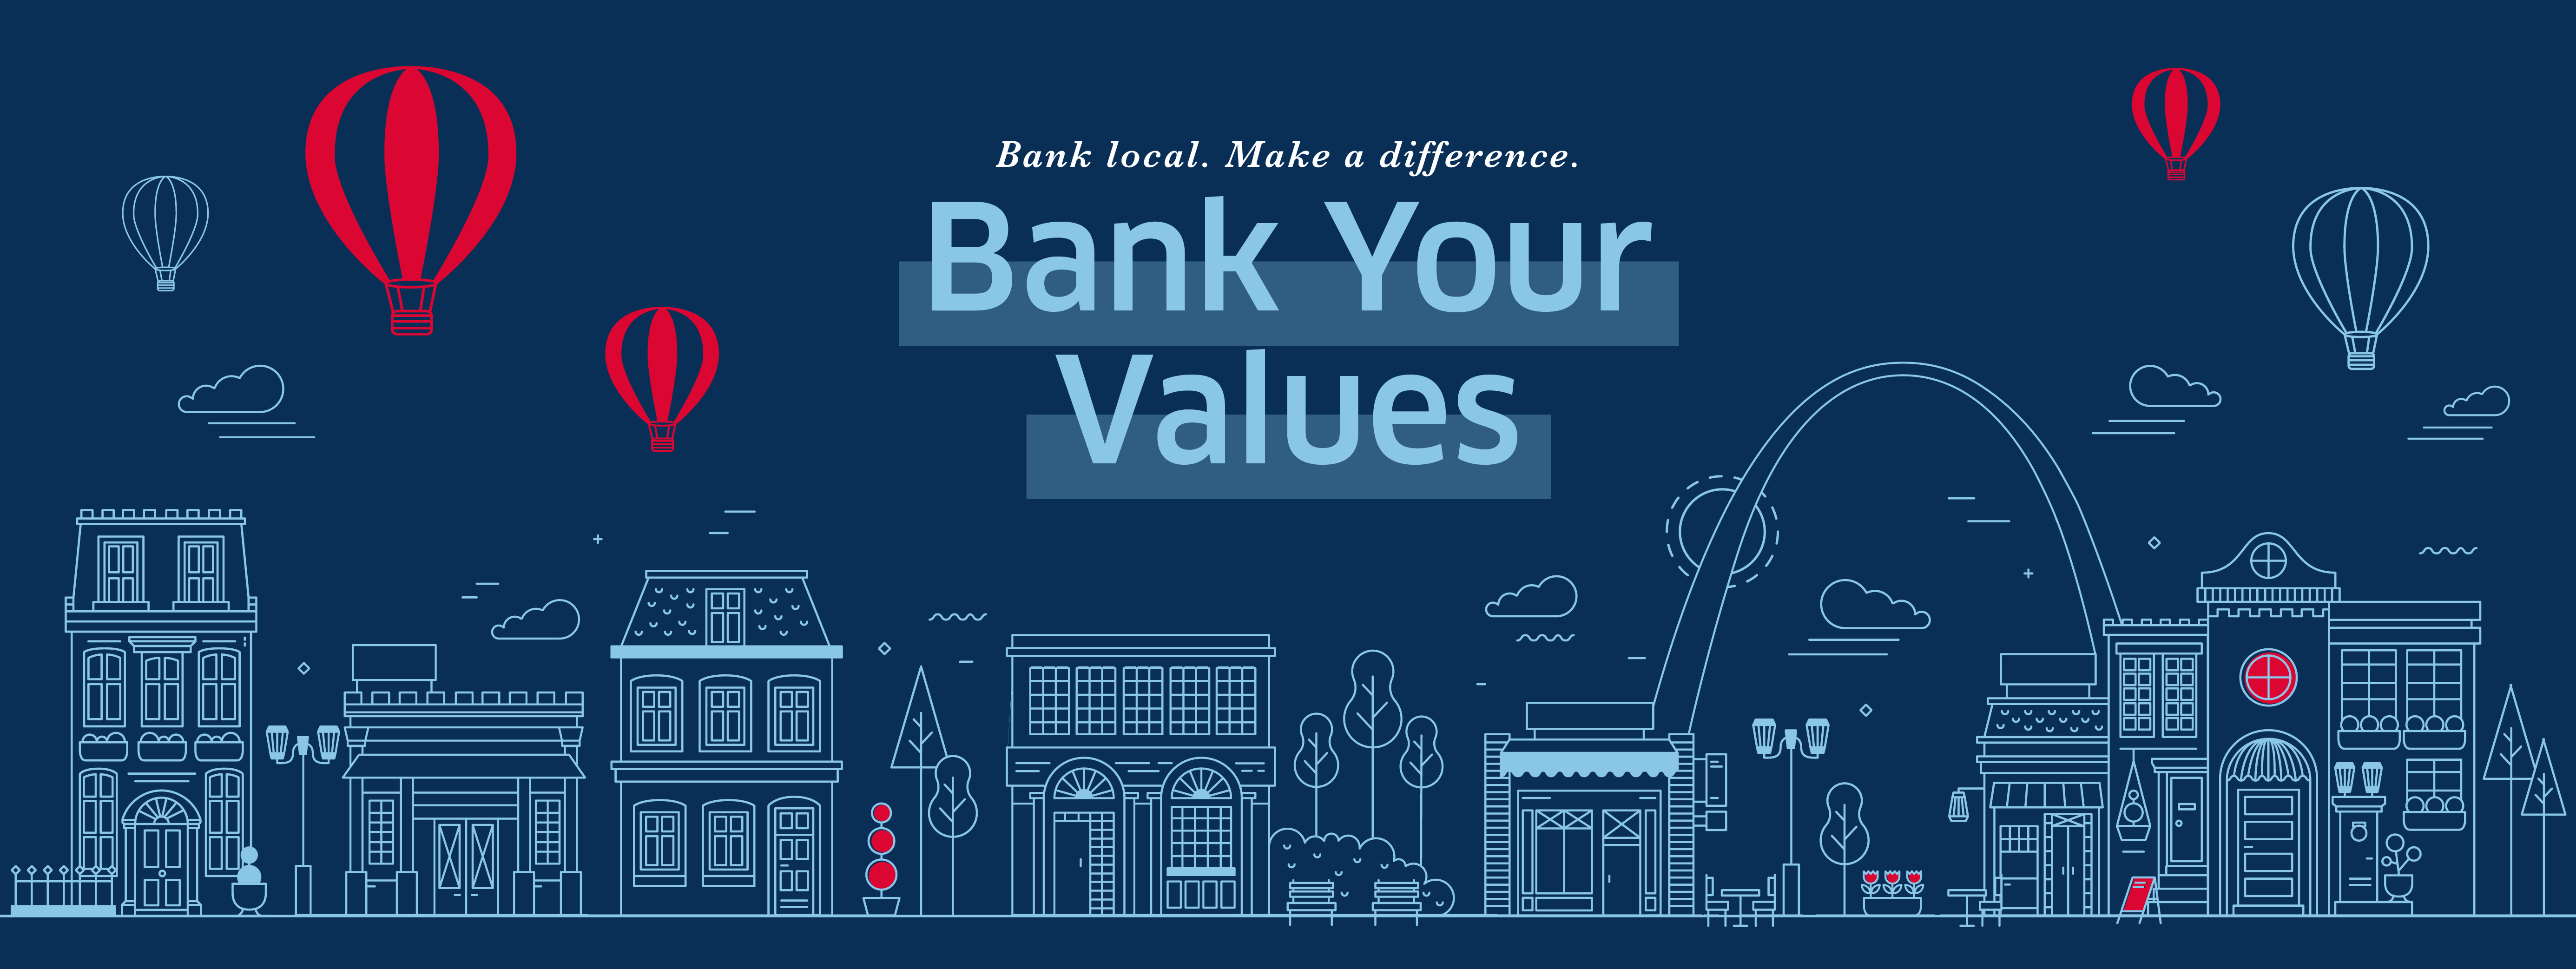 Bank Your Values Graphic